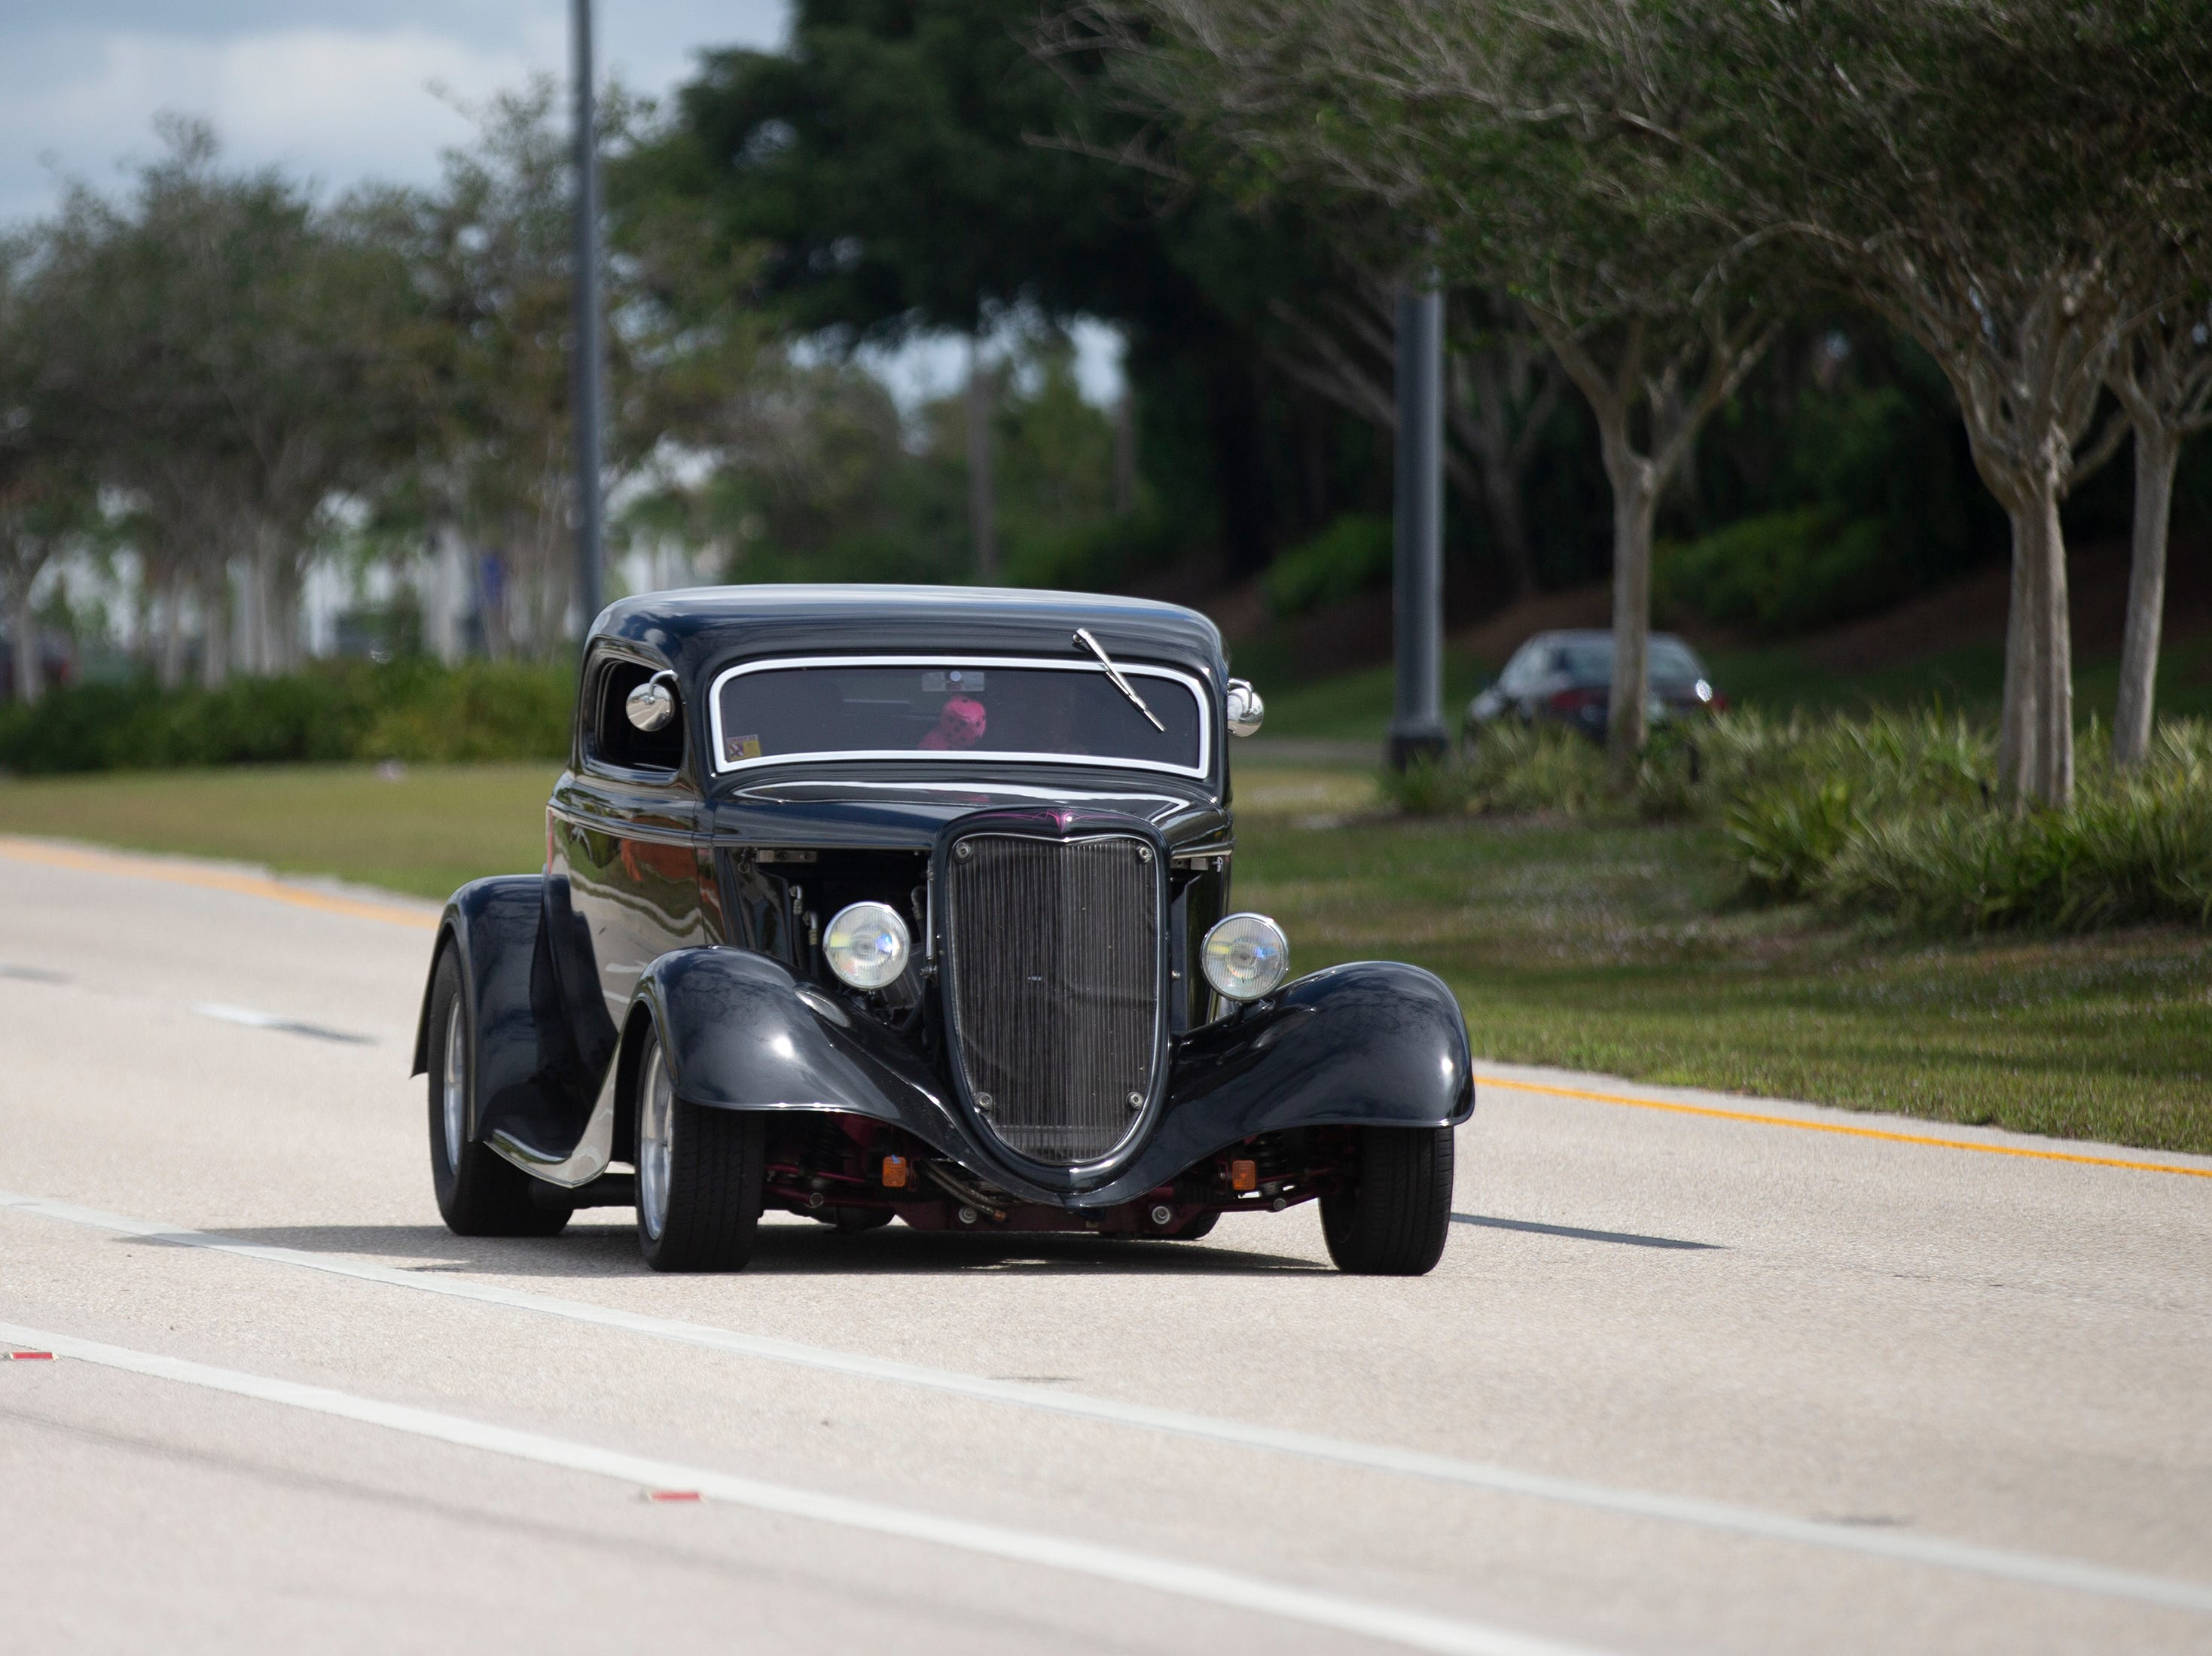 A car participates in the Cruis'n for a Cause event on Saturday, April 13, 2019 in Estero.